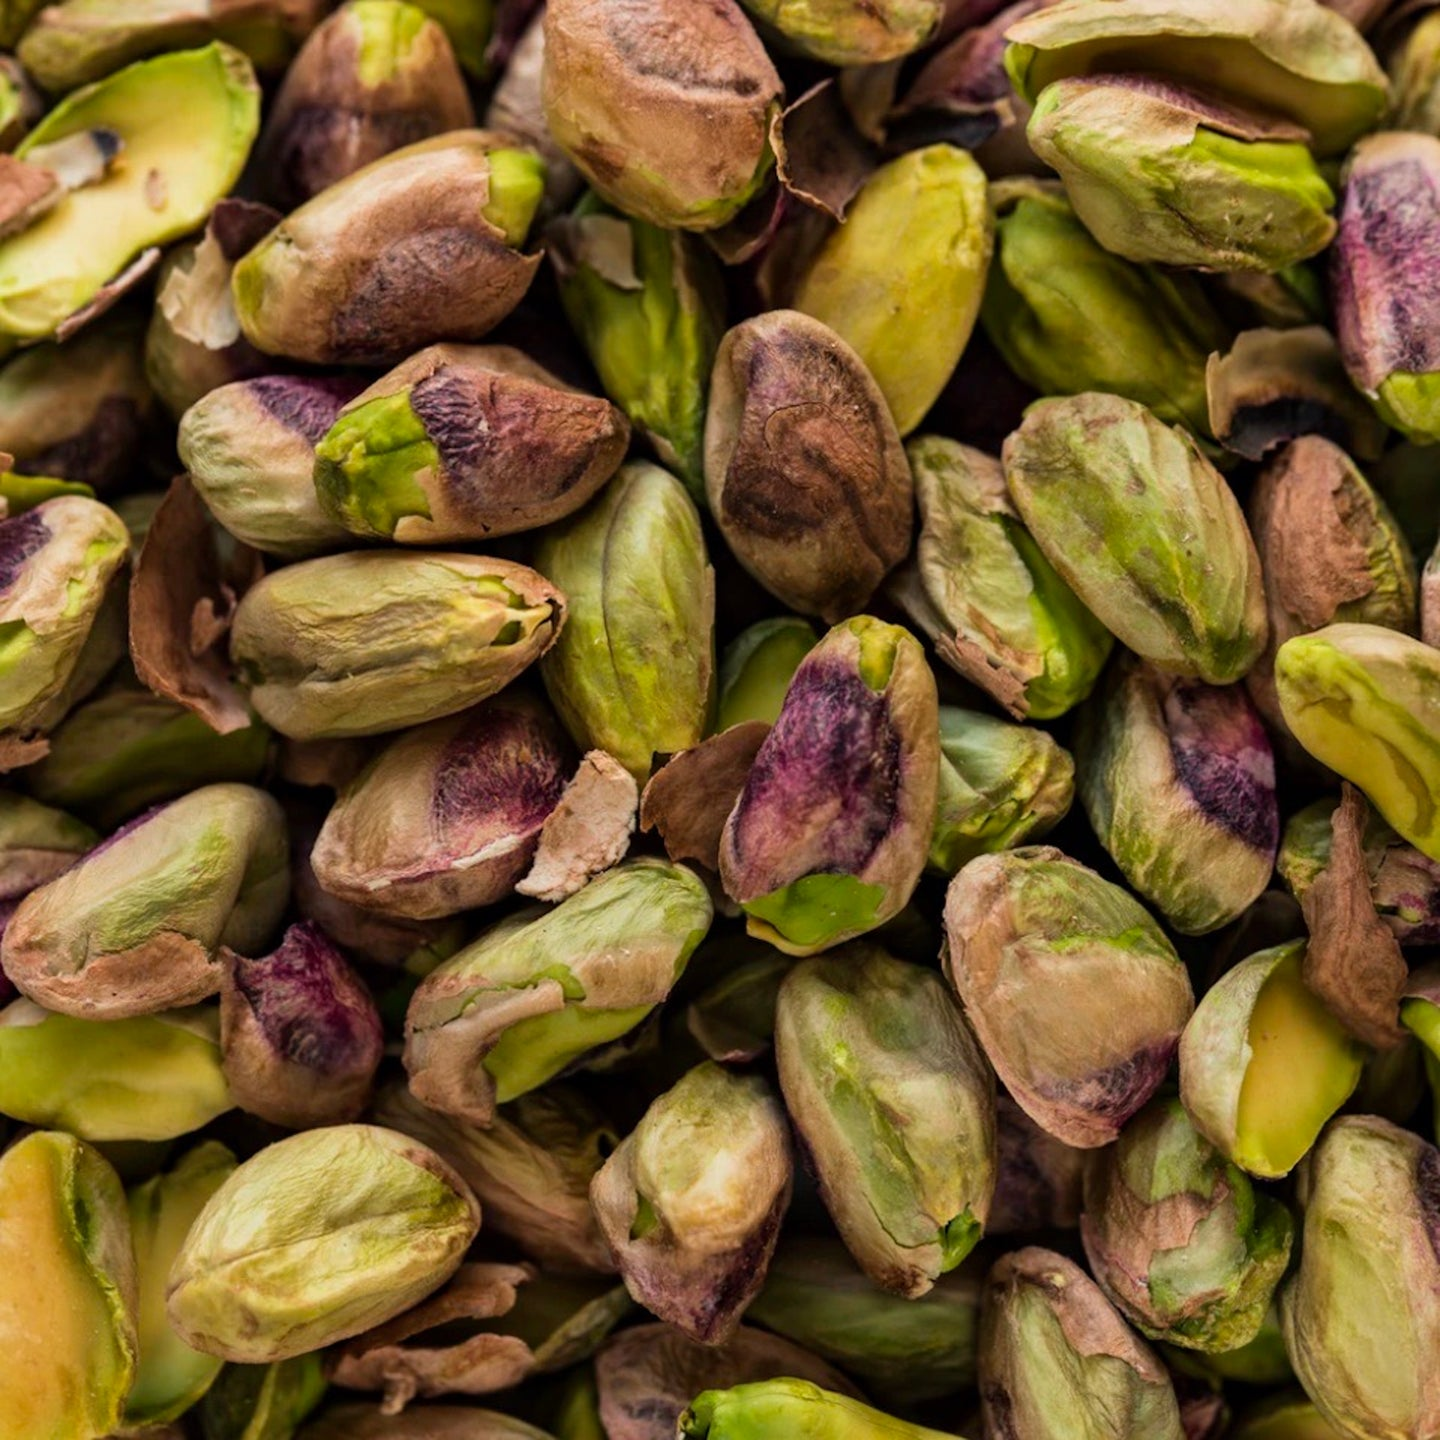 pistachio-peeled-online-grocery-delivery-singapore-thenewgrocer